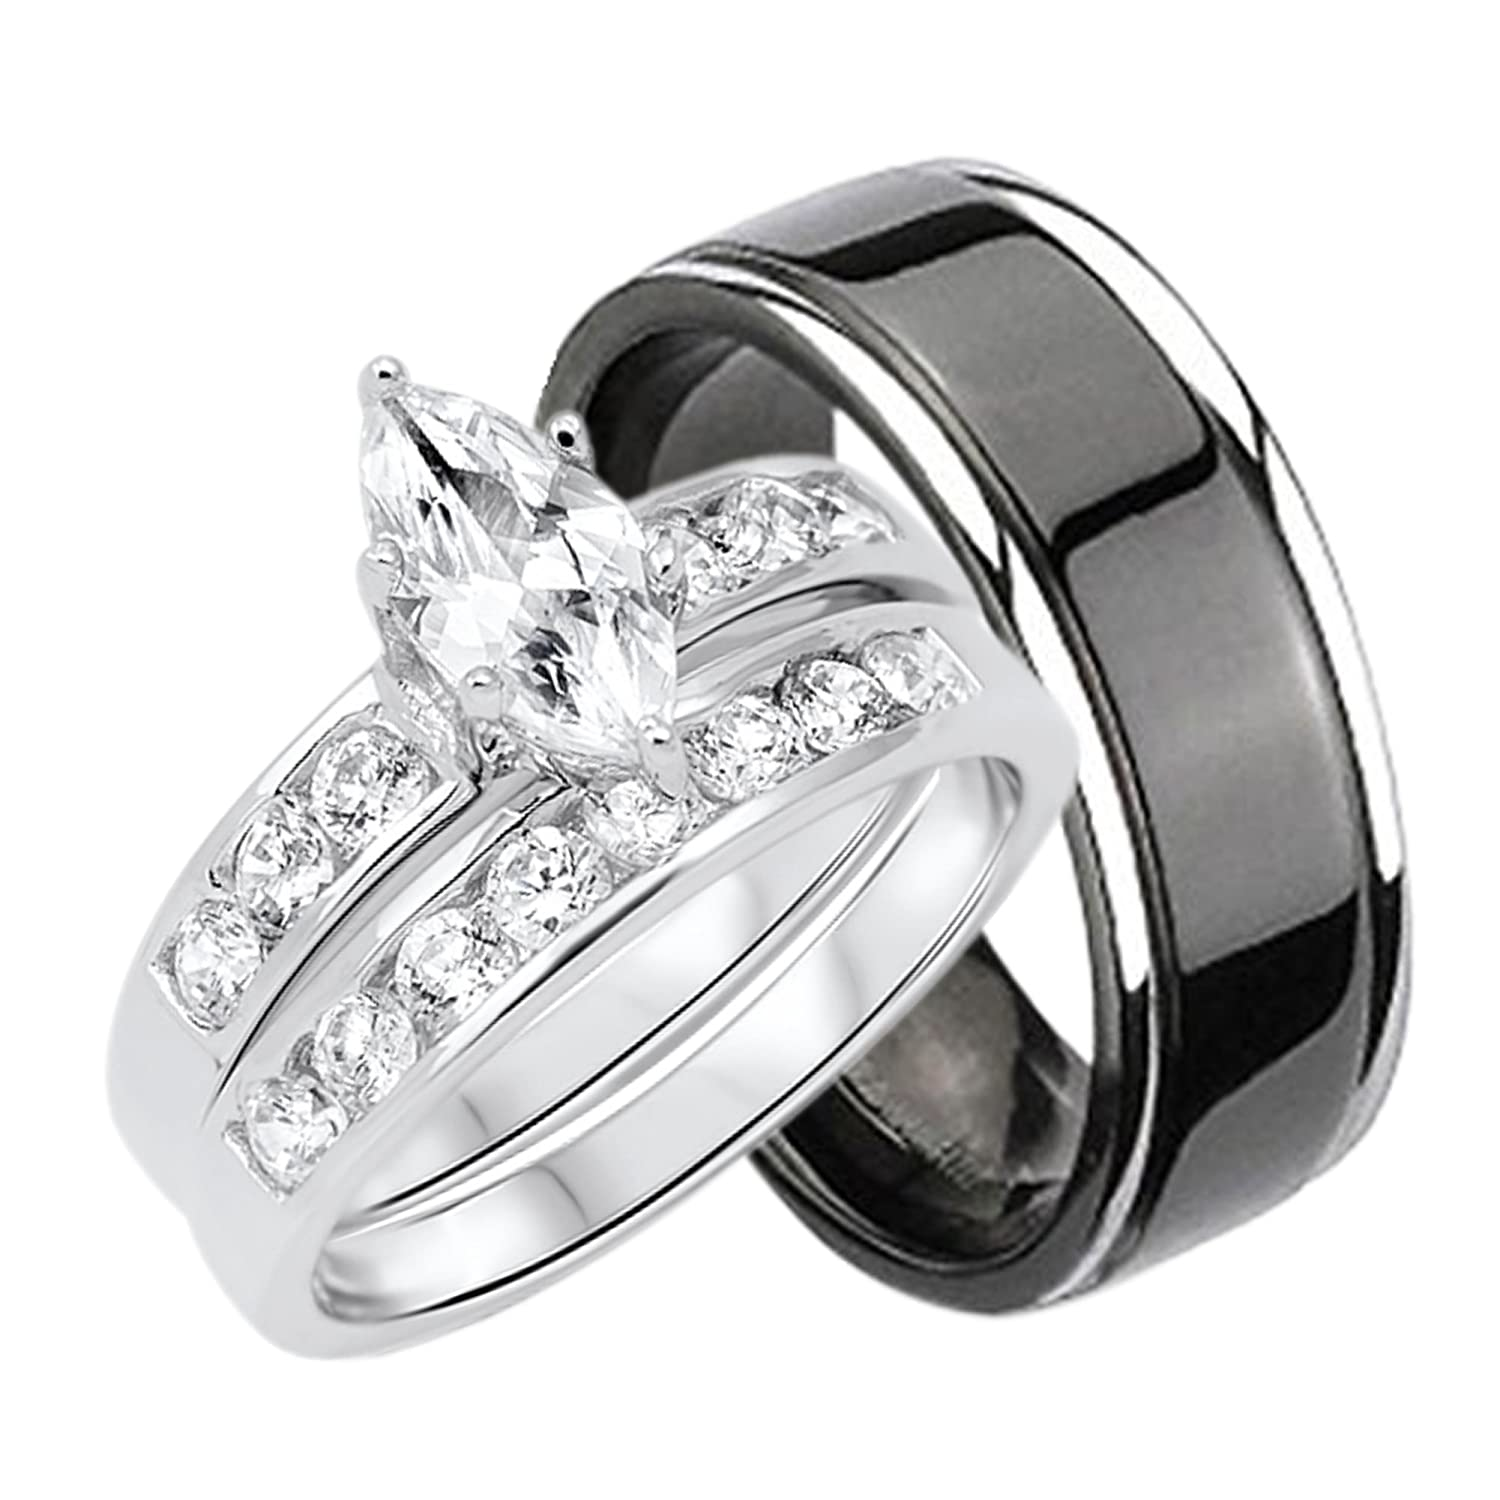 eafa0c22c22d0b Amazon.com: His and Hers Wedding Rings Set Sterling Silver Titanium  Matching Bands for Him and Her: Jewelry